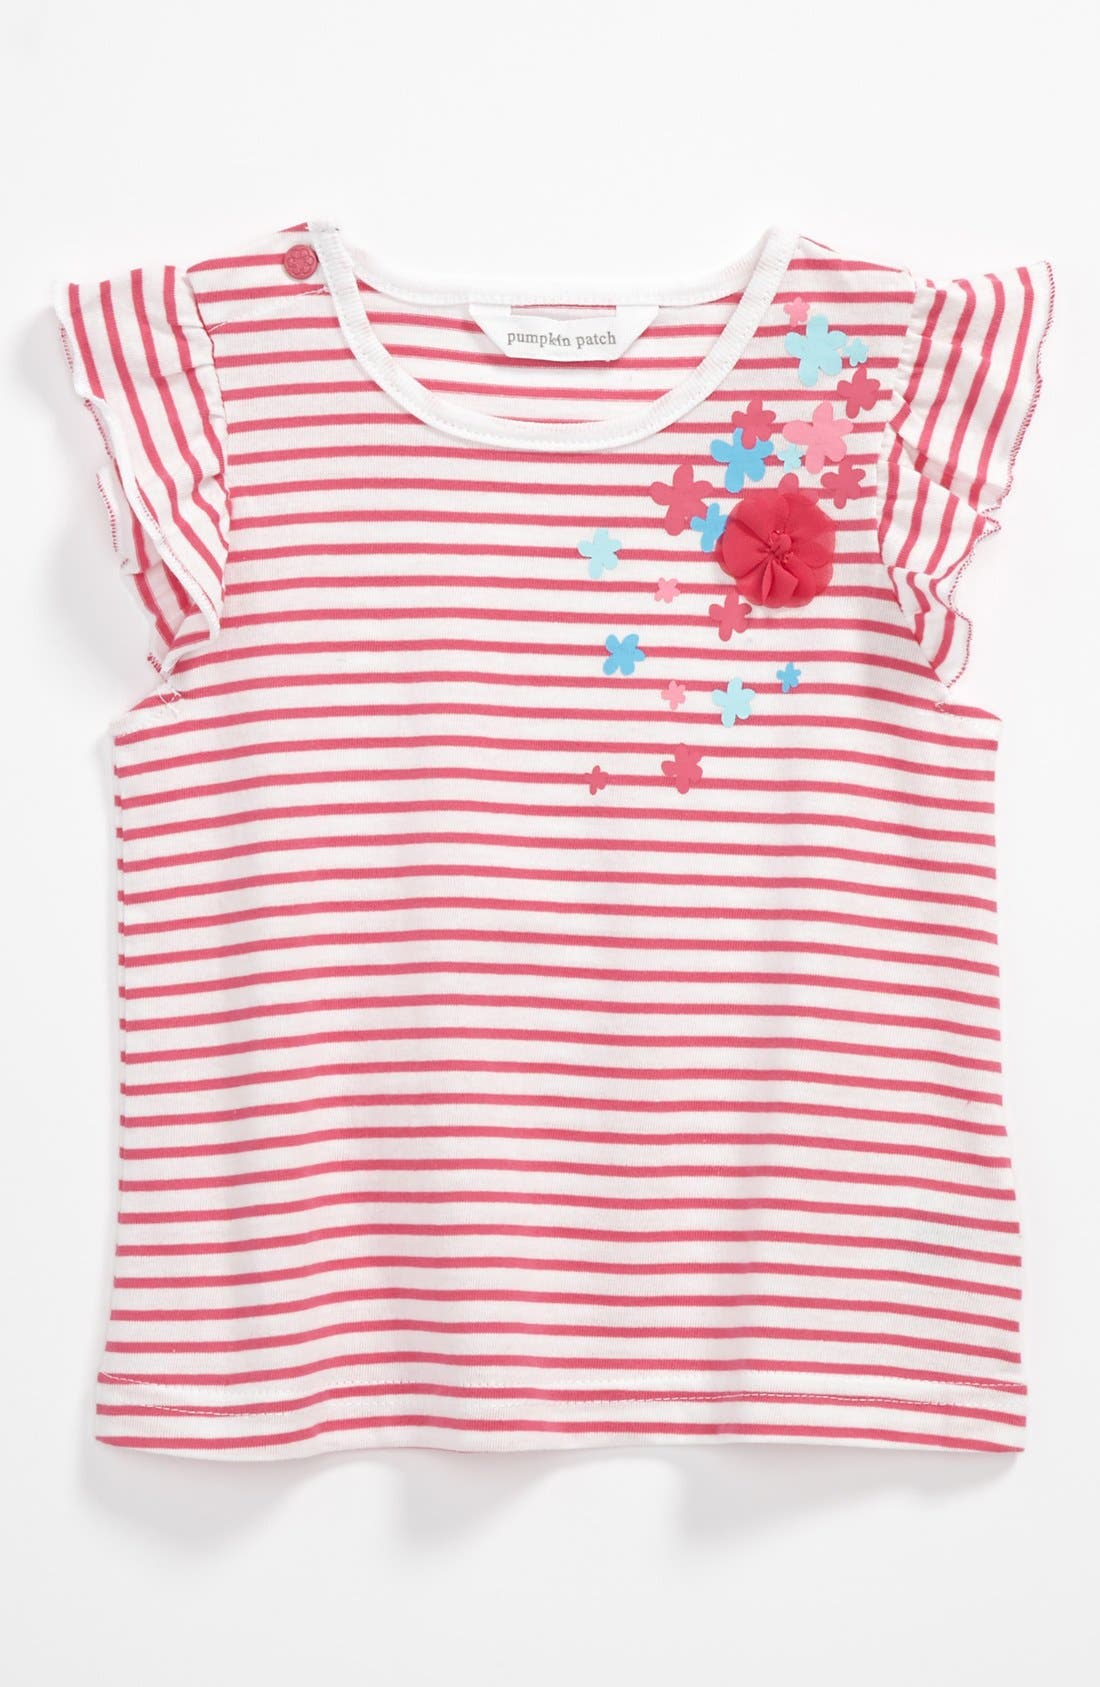 Main Image - Pumpkin Patch Stripe Top (Baby)